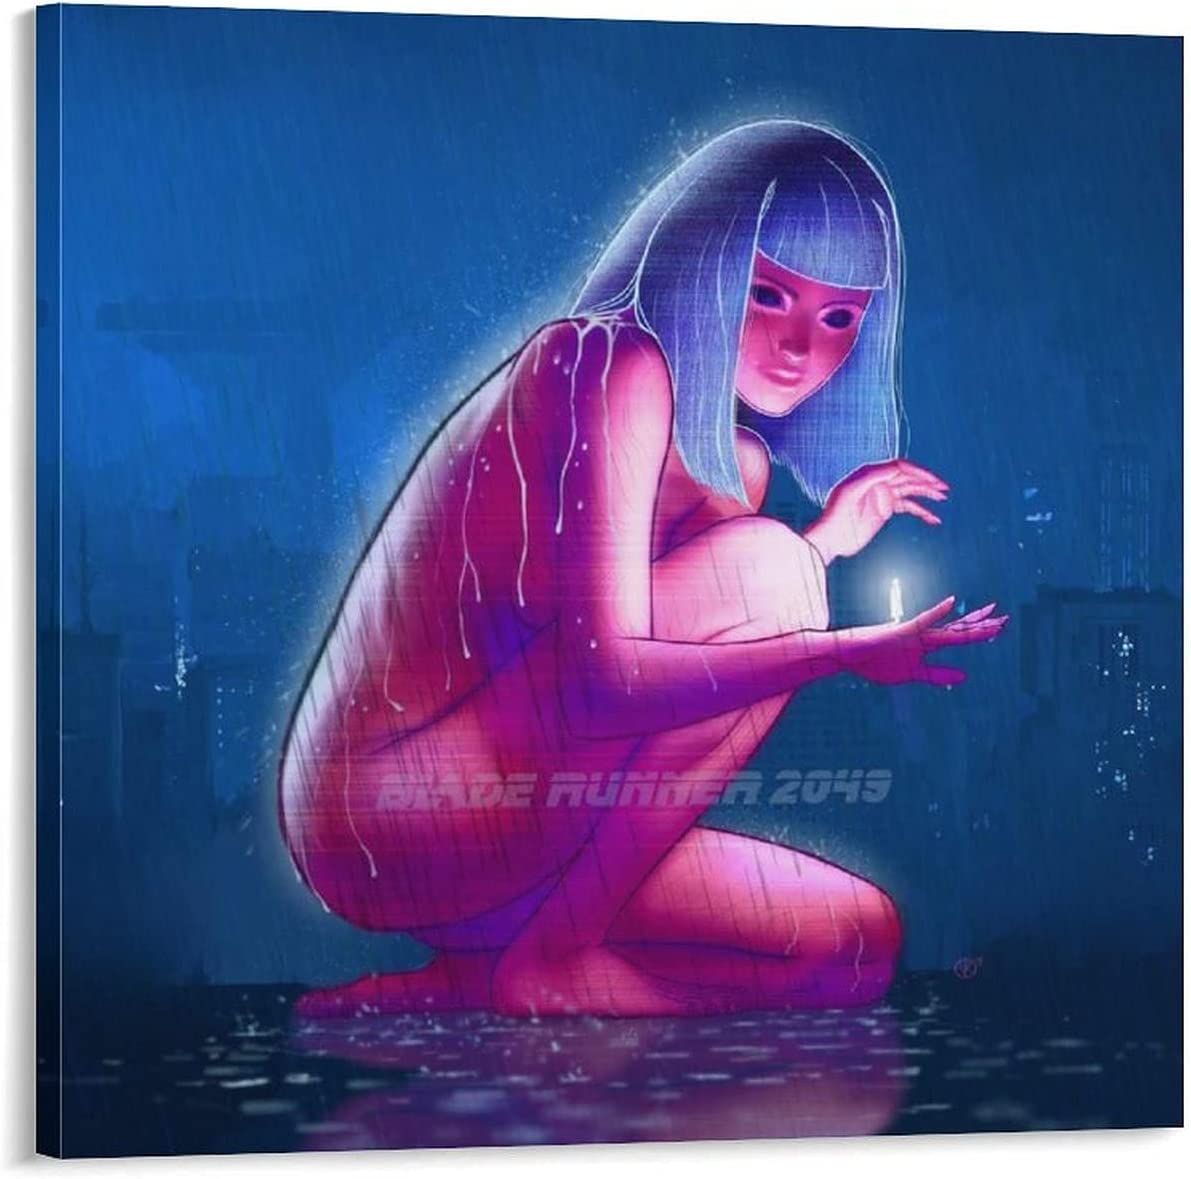 Joi Runner Max Outlet sale feature 71% OFF 2049 Buttock Nude Decorative Movie Poster Pain